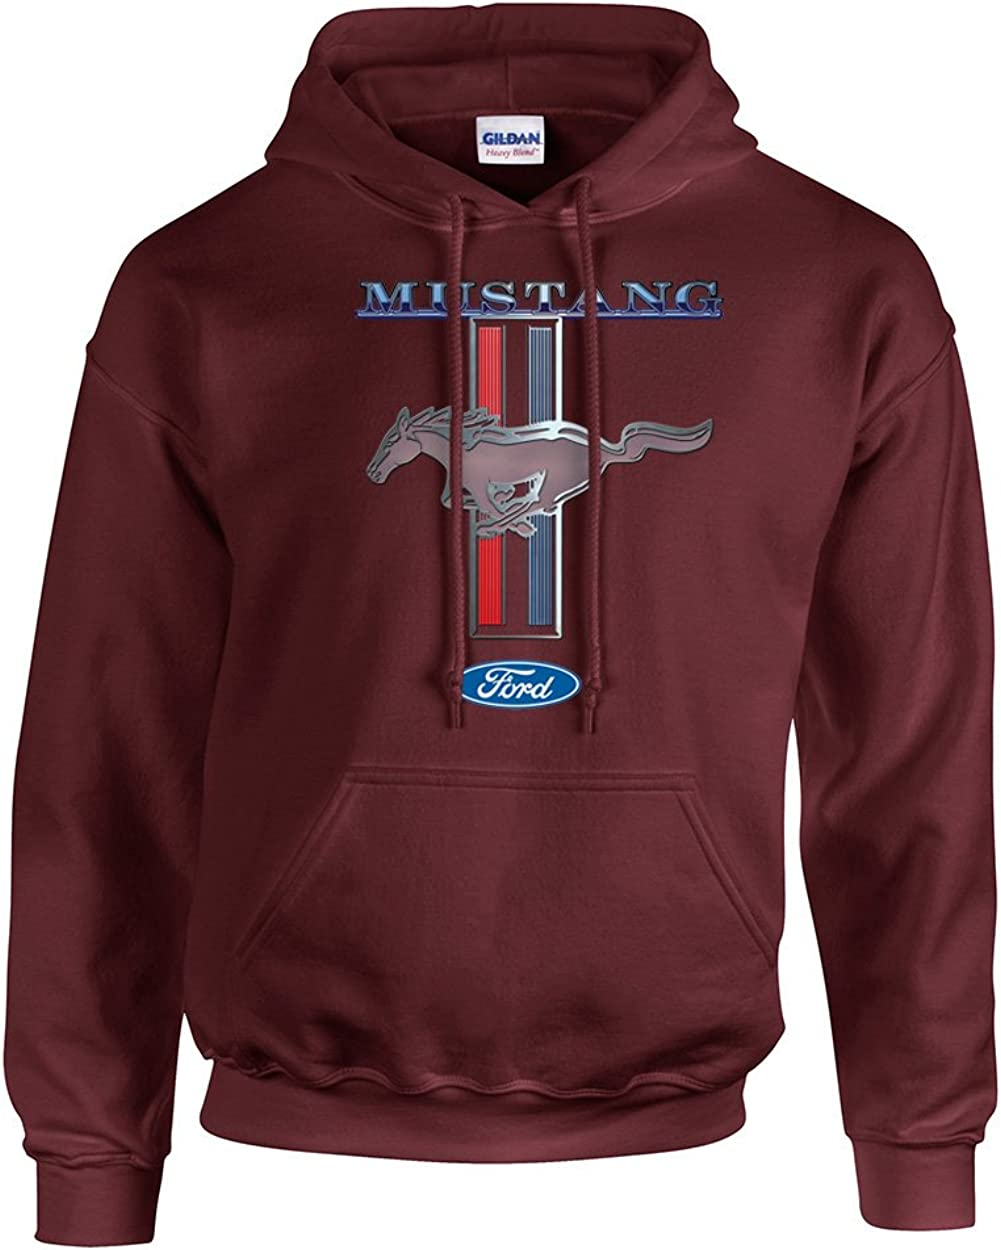 Ford Mustang Hooded Sweatshirt Mustang Pony Design Military